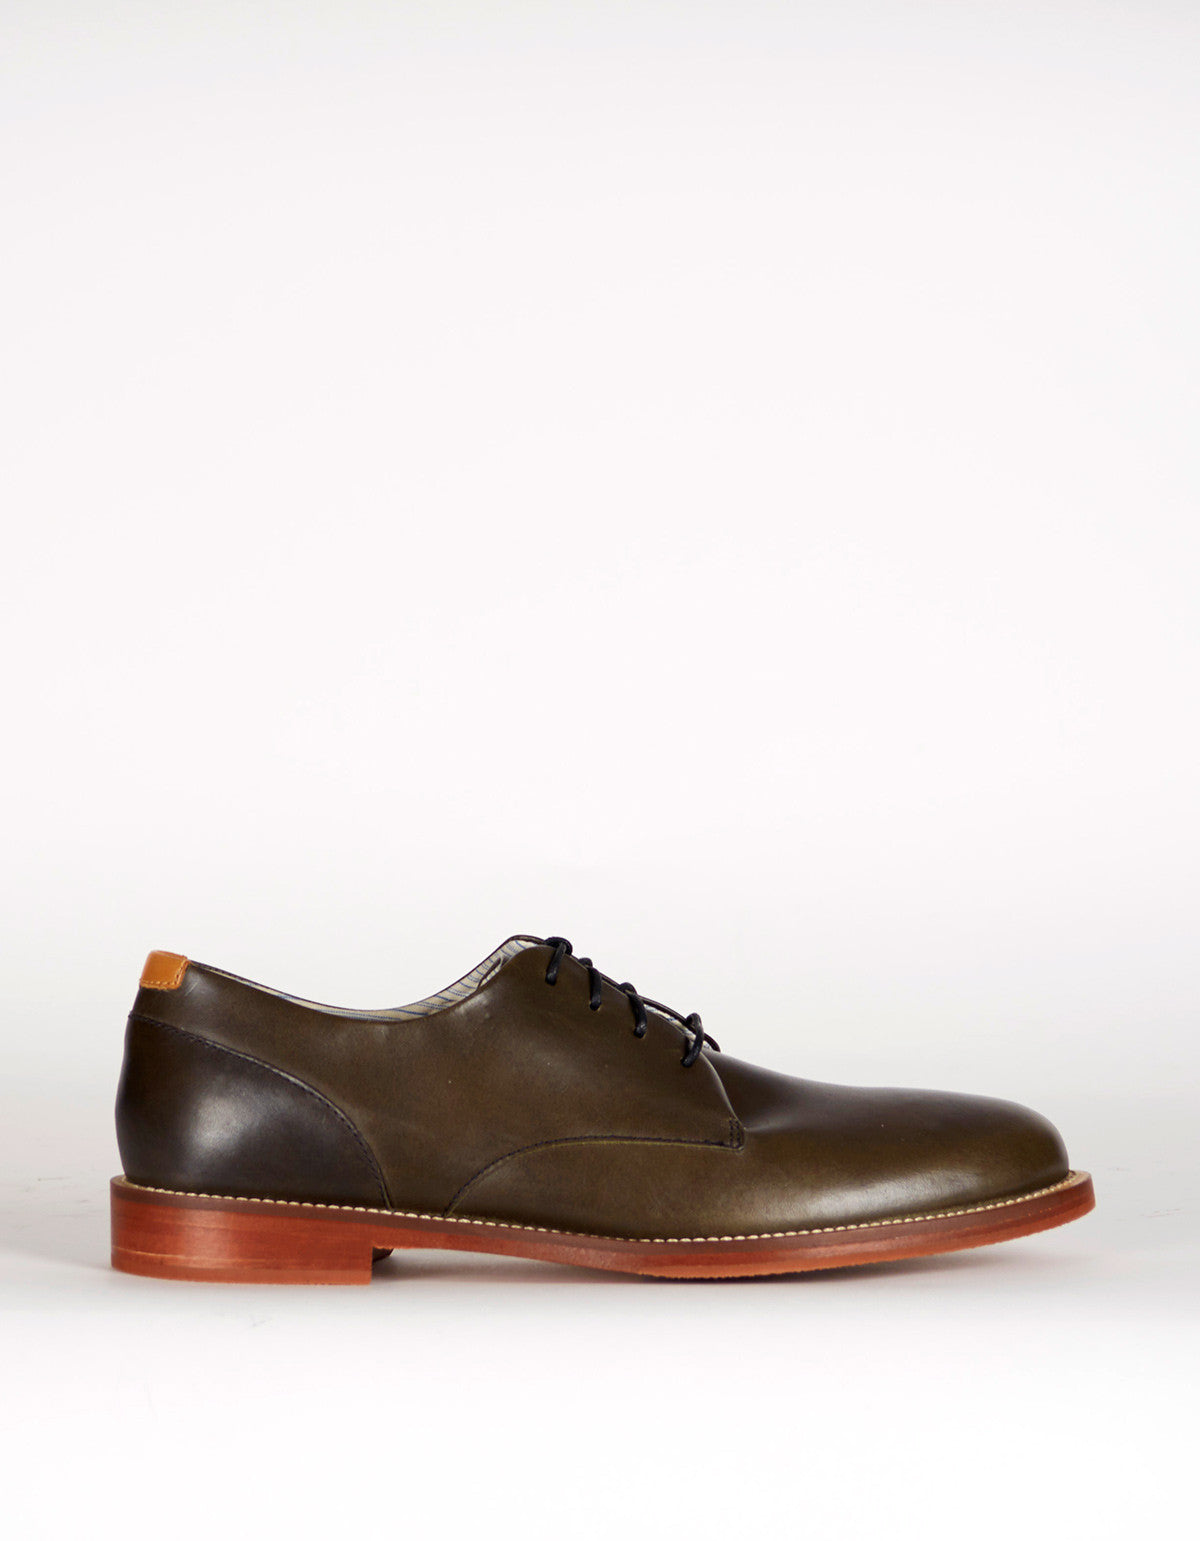 J Shoes William Derby Black - Still Life - 1